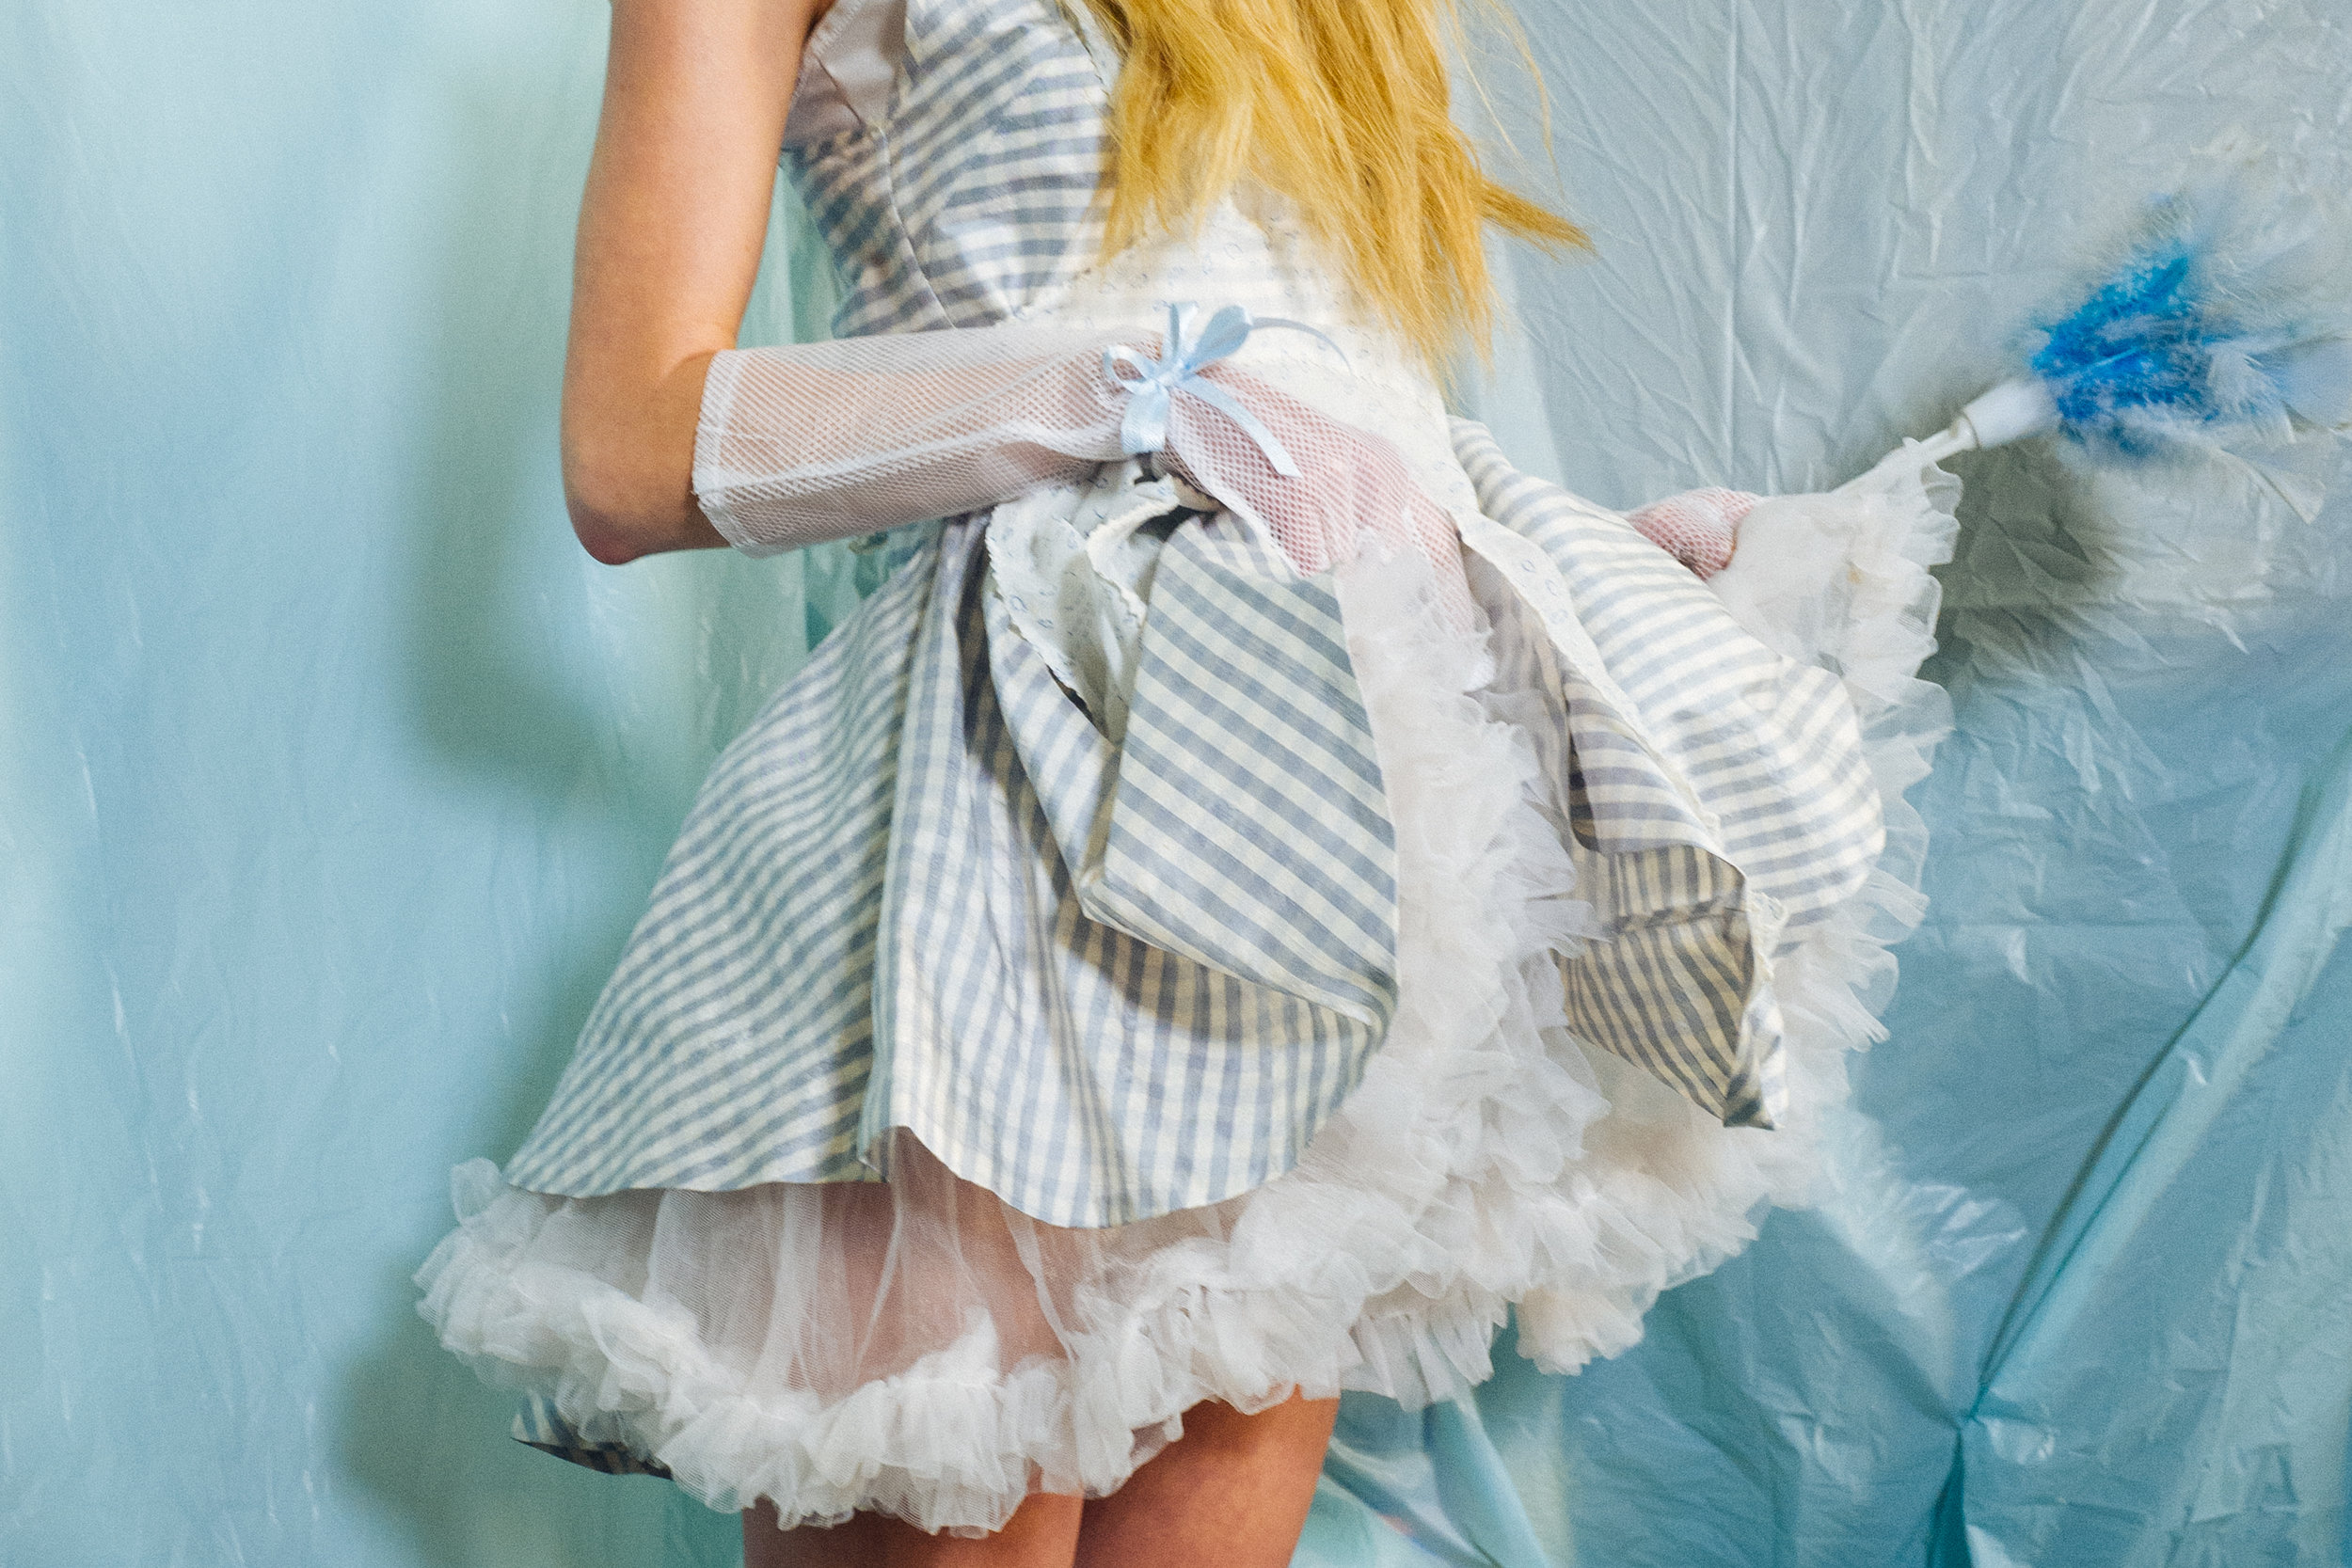 kelsey randall emerging designer made-to-measure fashion editorial custom bespoke gingham baby blue white silk check ruffle shoulder skater dress